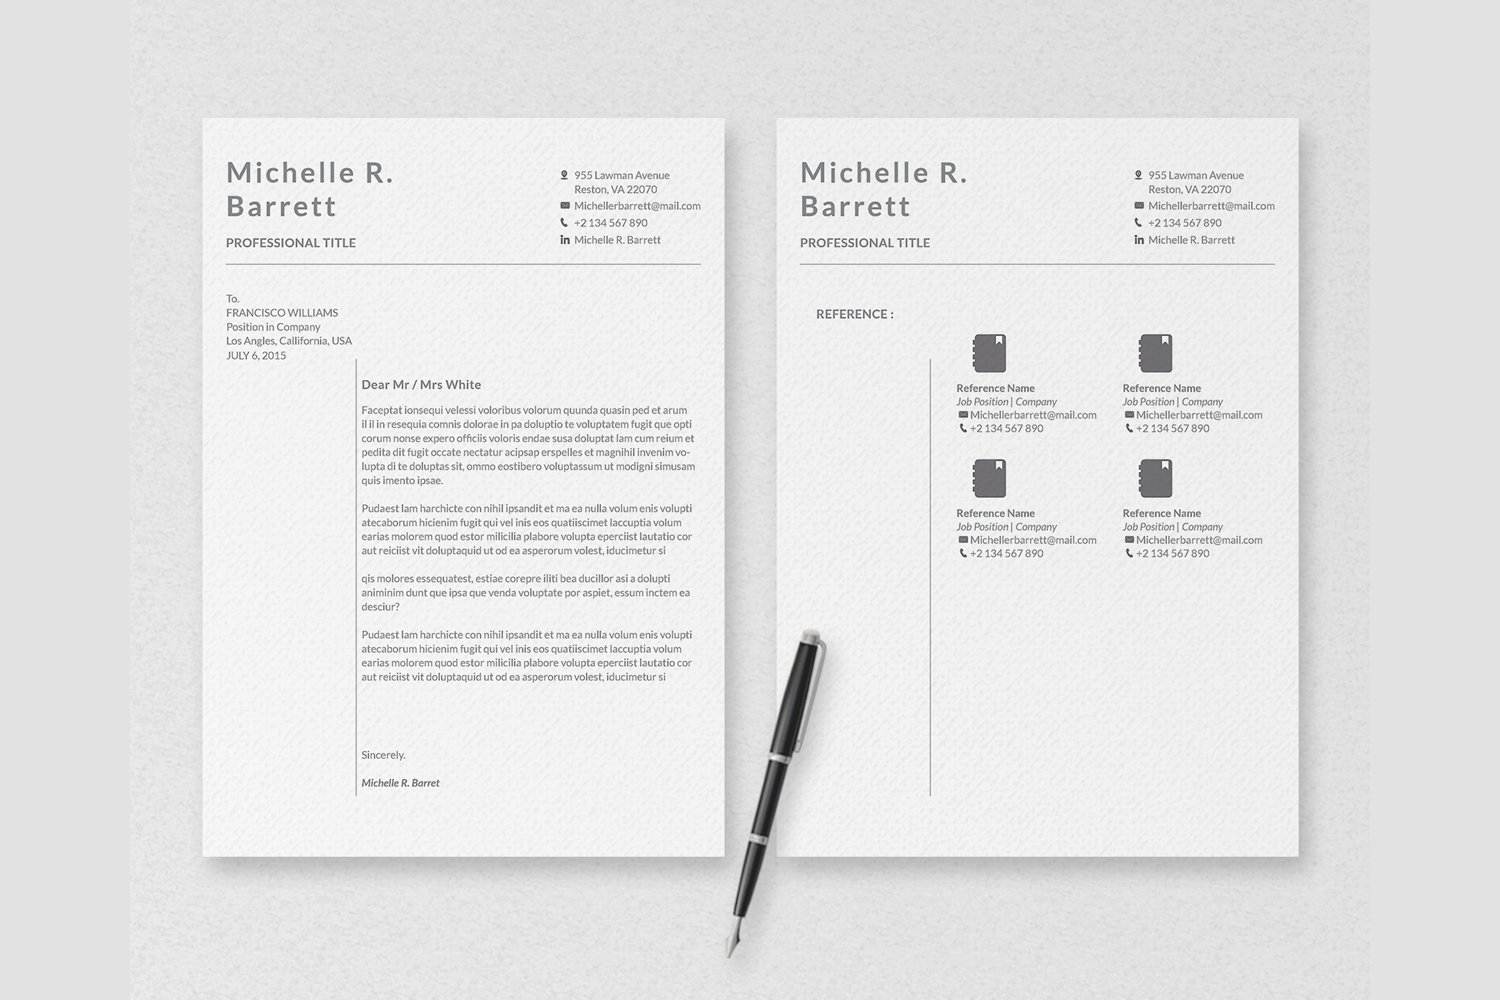 Professional Resume Templates example image 4